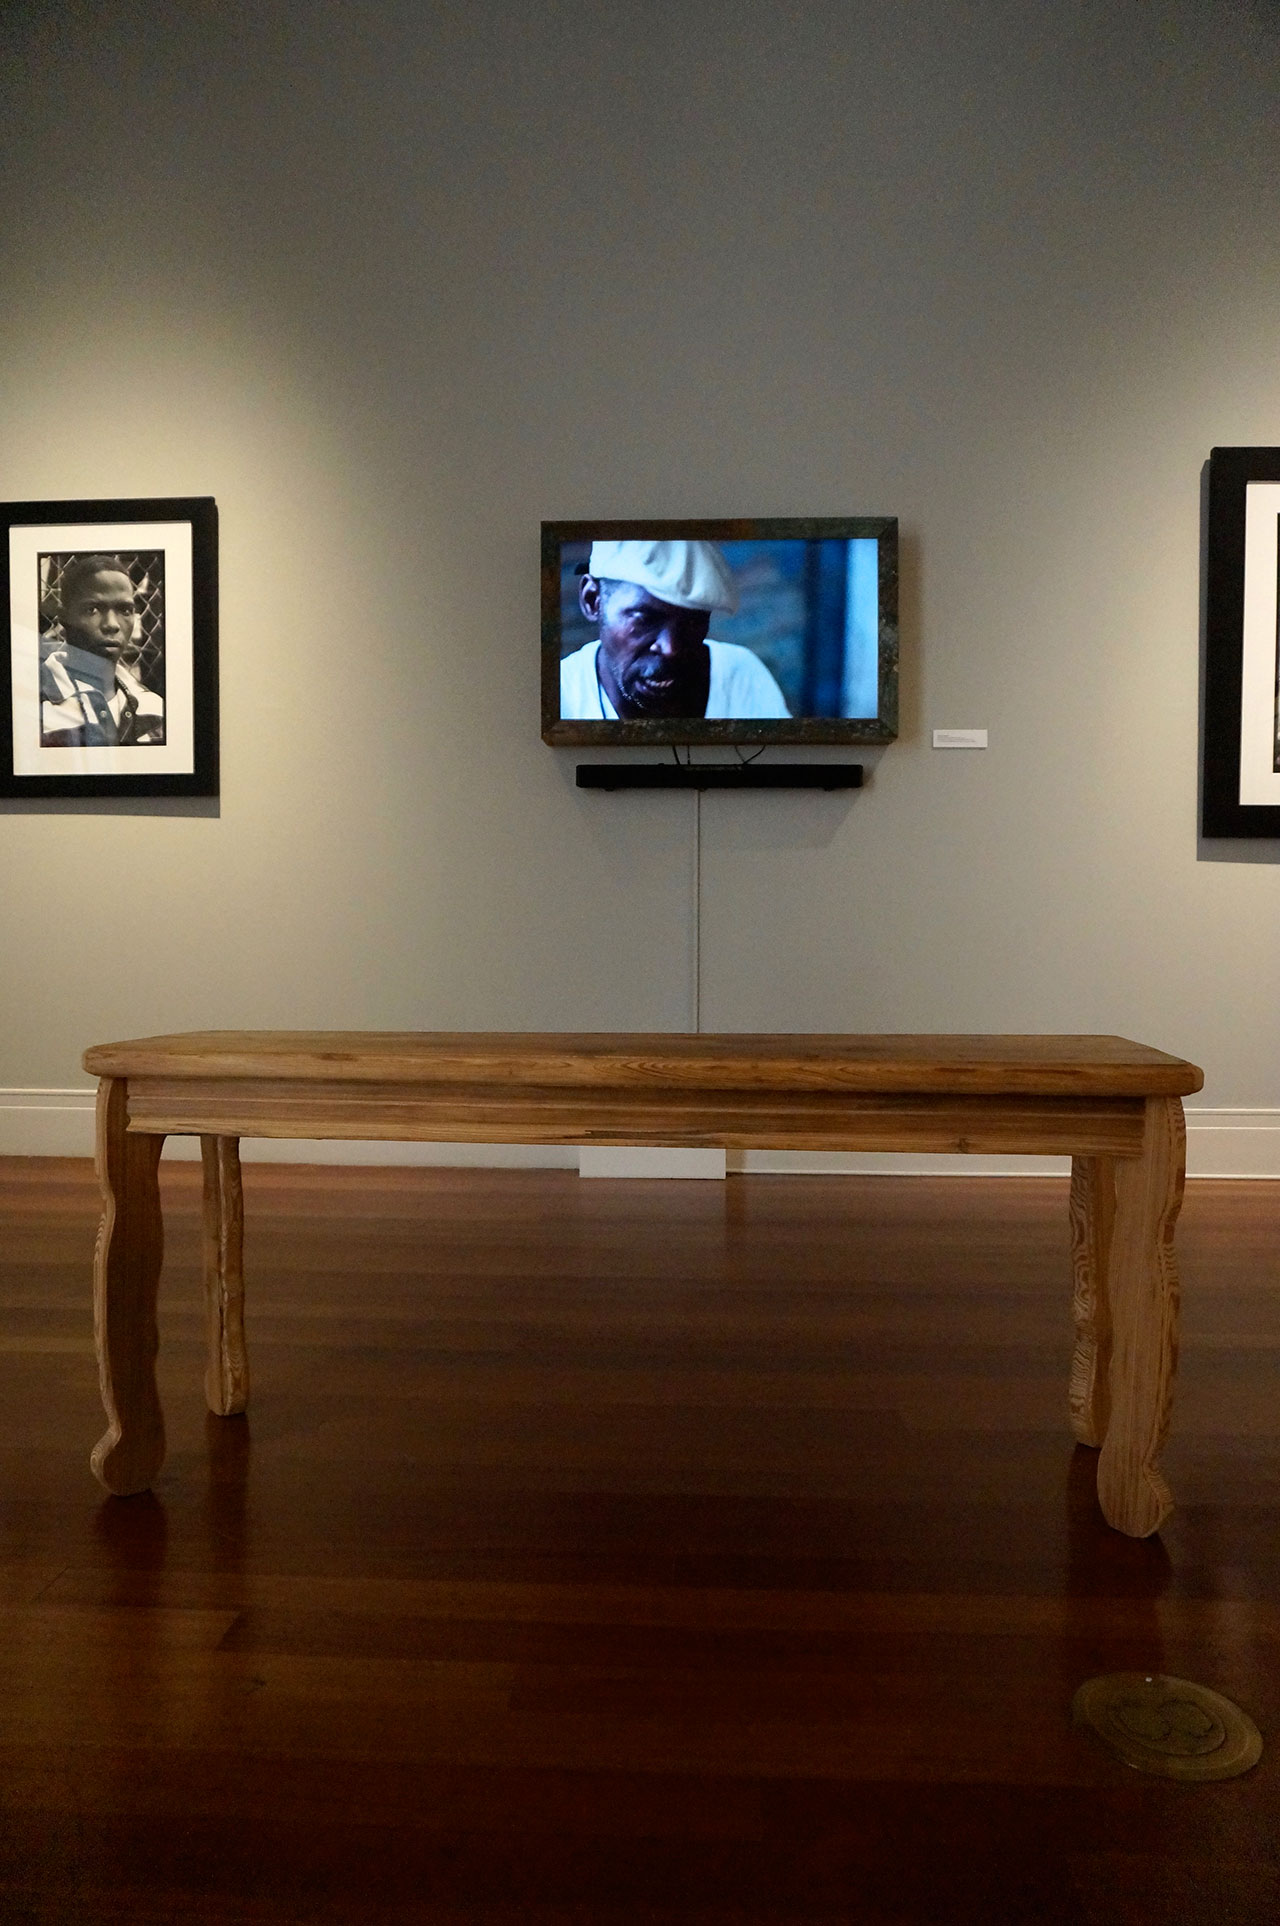 Keith Calhoun and Chandra McCormick's video of Henry James, with James's bench in the foreground (click to enlarge)